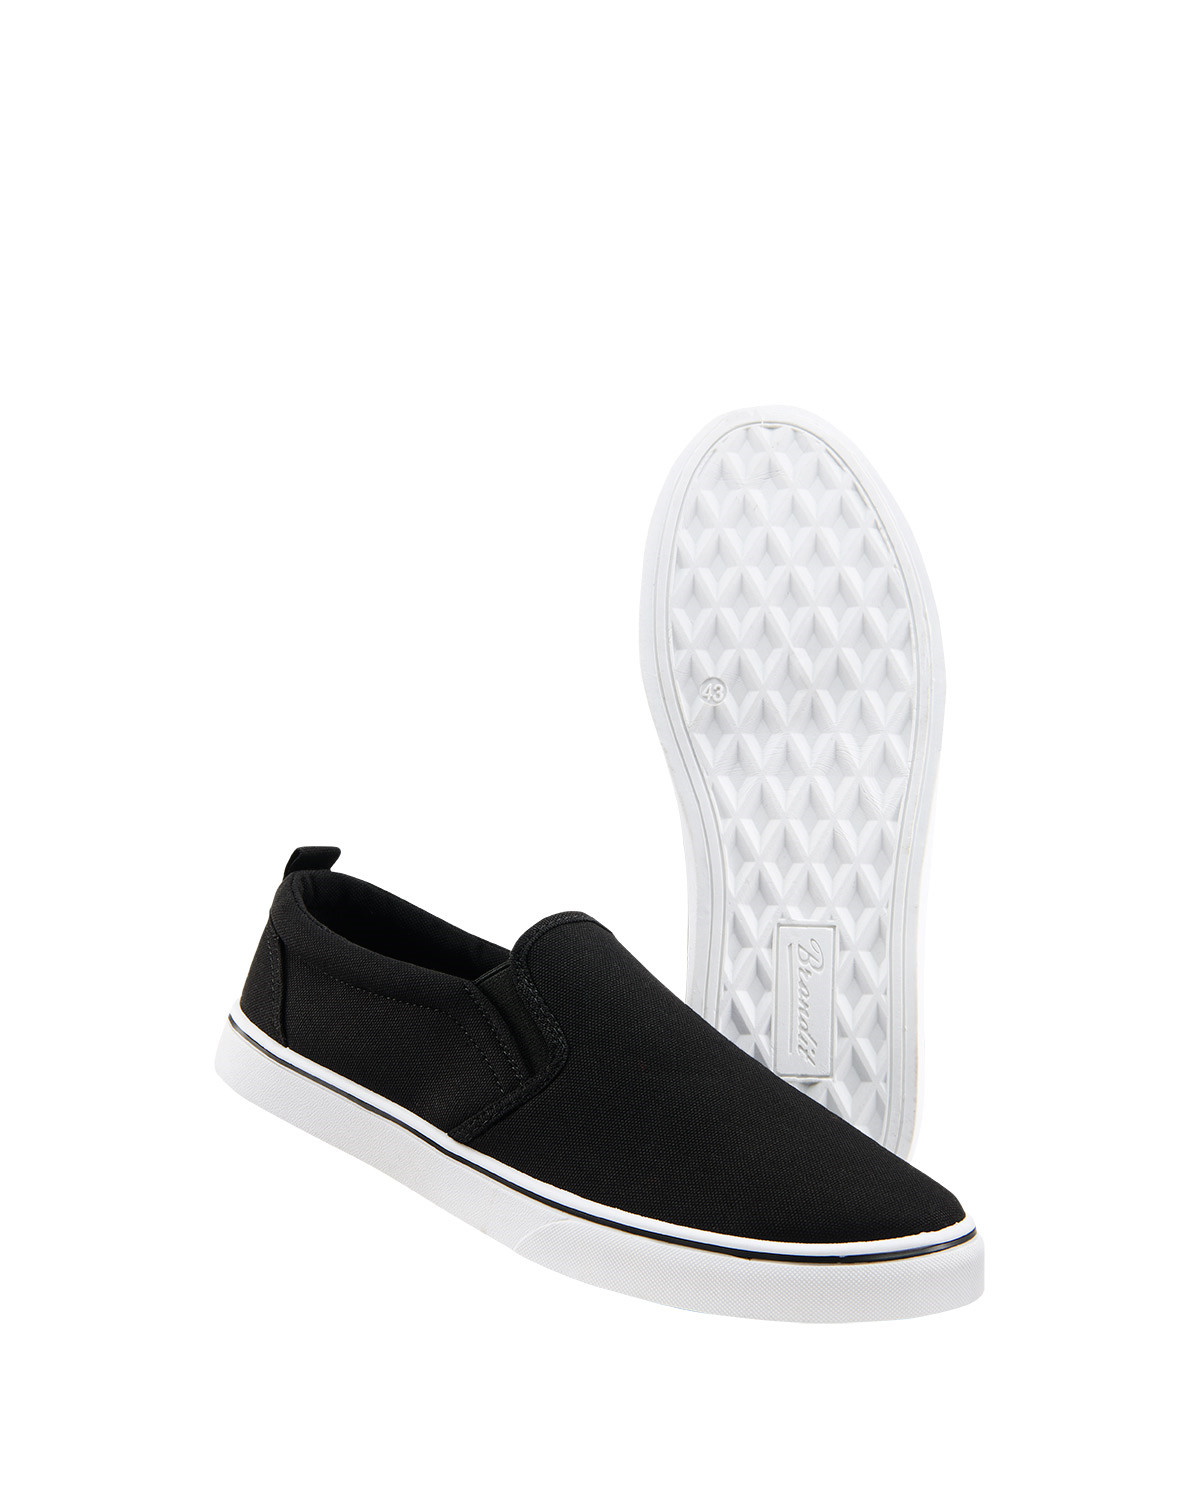 Image of   Brandit Southampton Slip On Sneaker (Sort / Hvid, 36 EU / 3 UK)